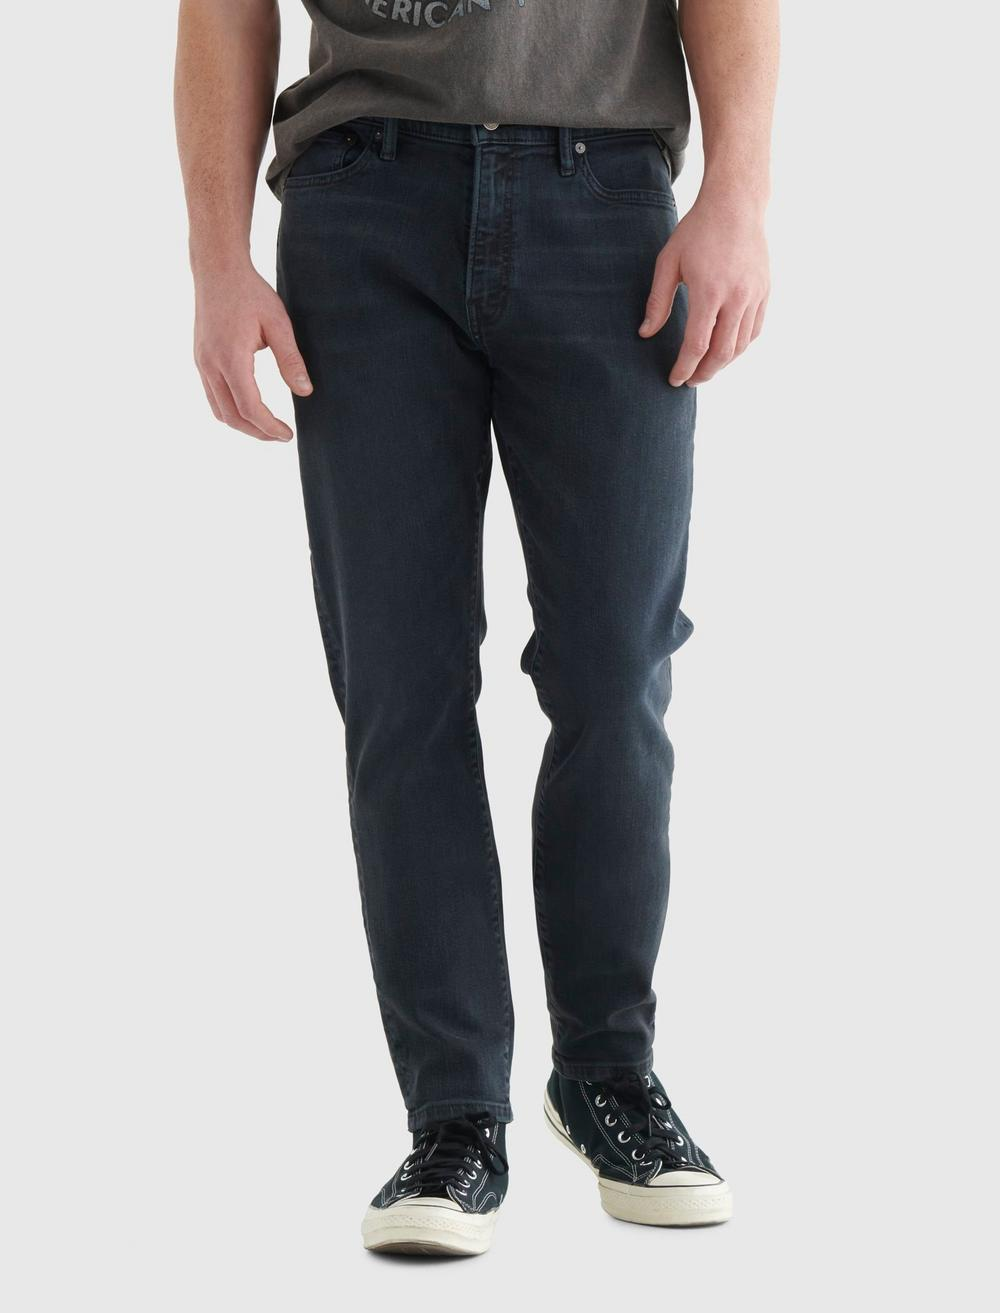 411 ATHLETIC TAPER ADVANCED STRETCH JEAN, image 2